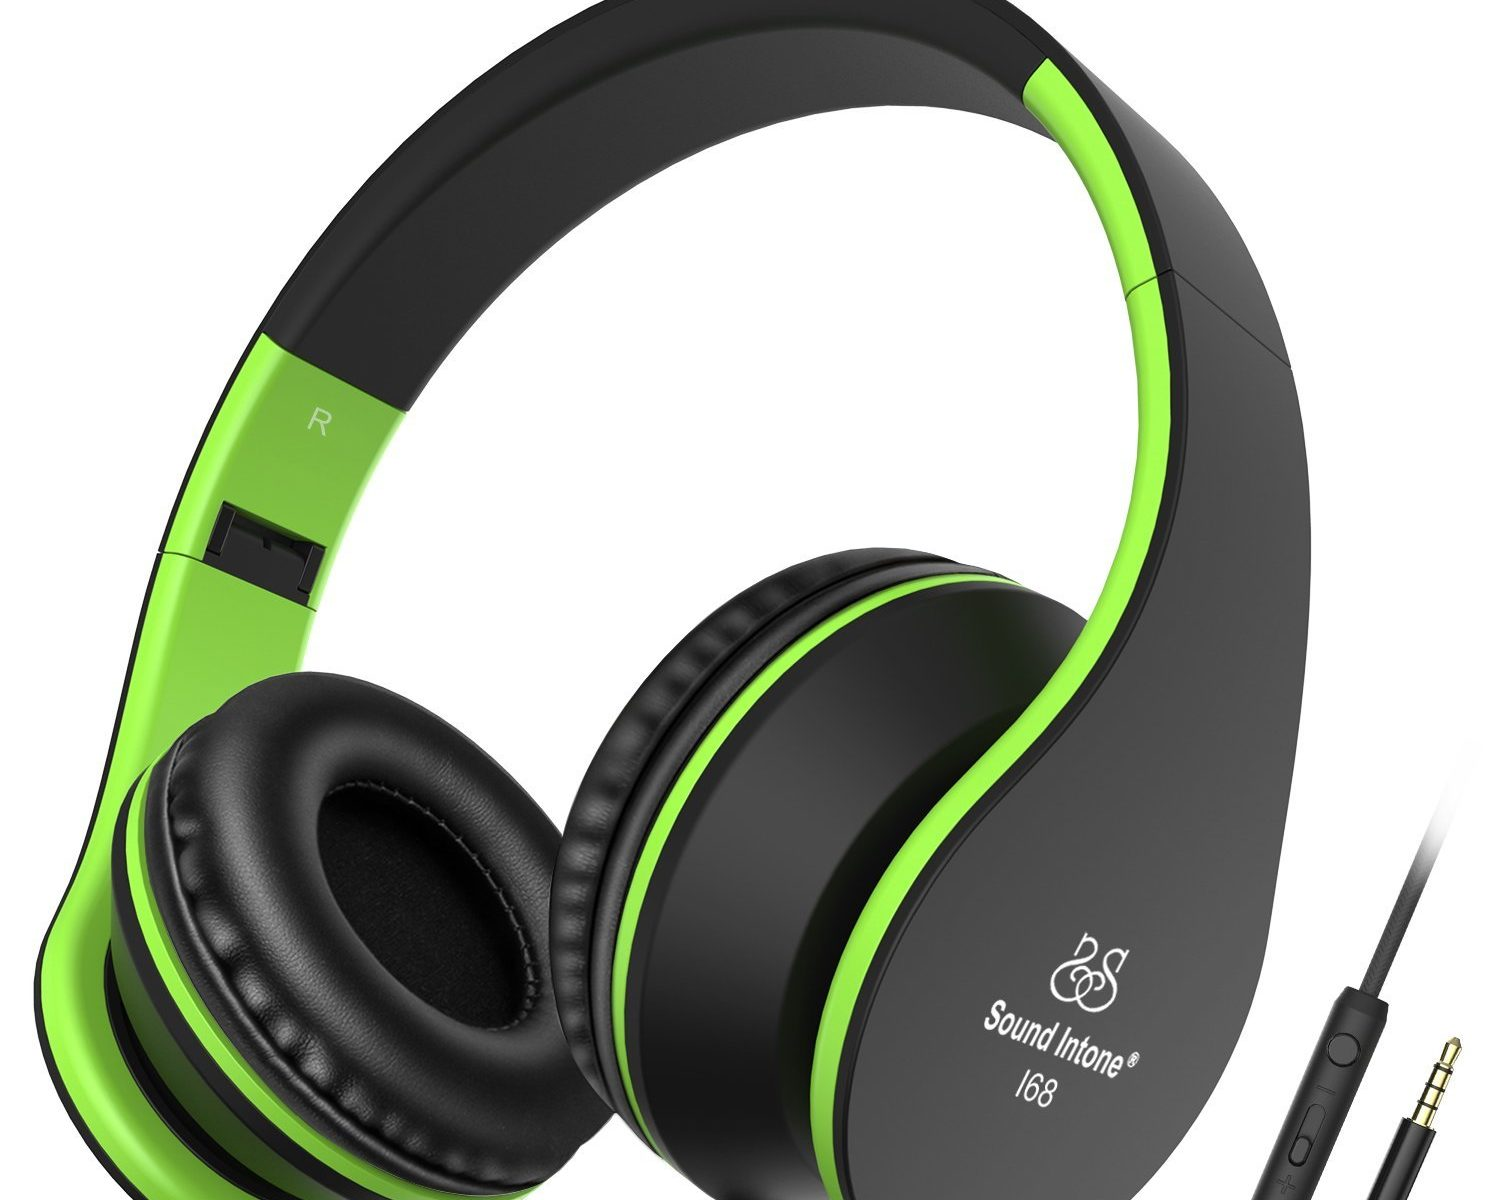 Sound Intone I68, Kopfhörer On-Ear Headset